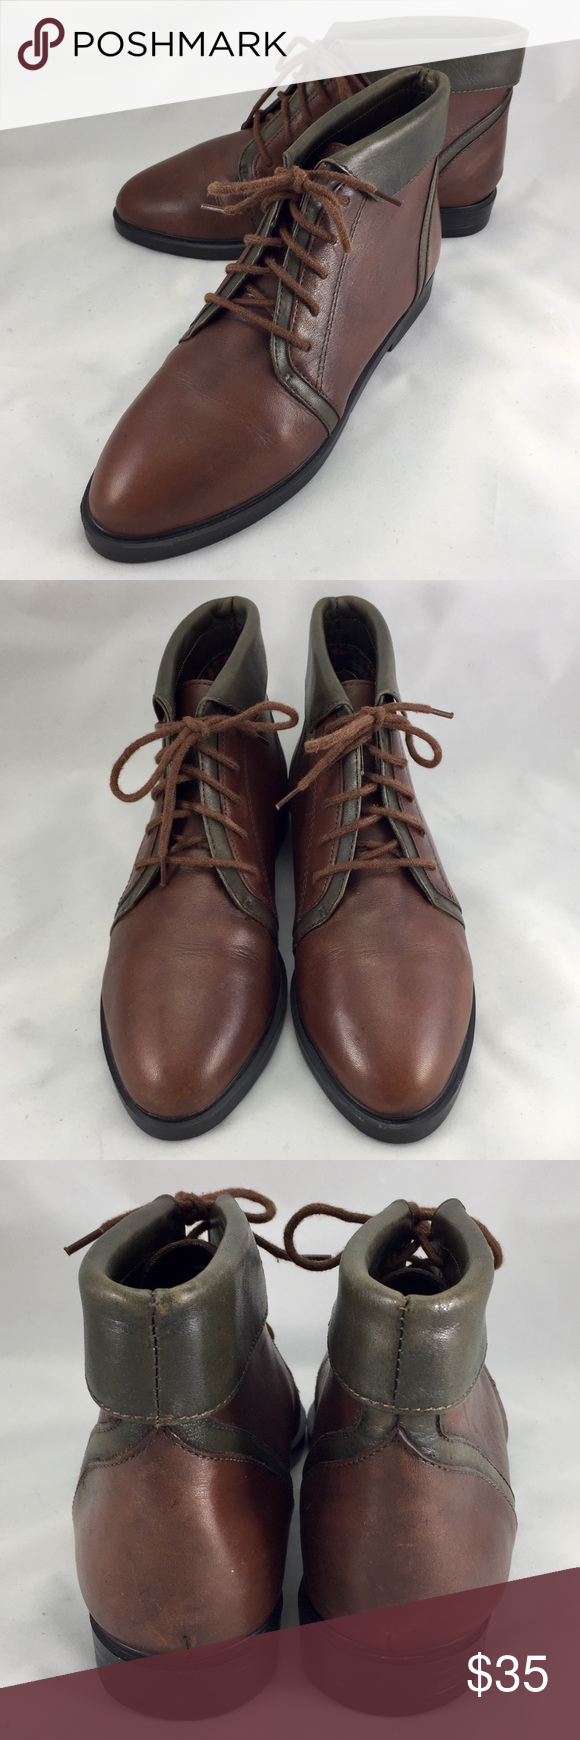 1b9453217f2b Like NEW vintage Sporto colorblock lace up booties Two-tone brown and olive  green vintage leather tie ankle boots booties by Sporto.